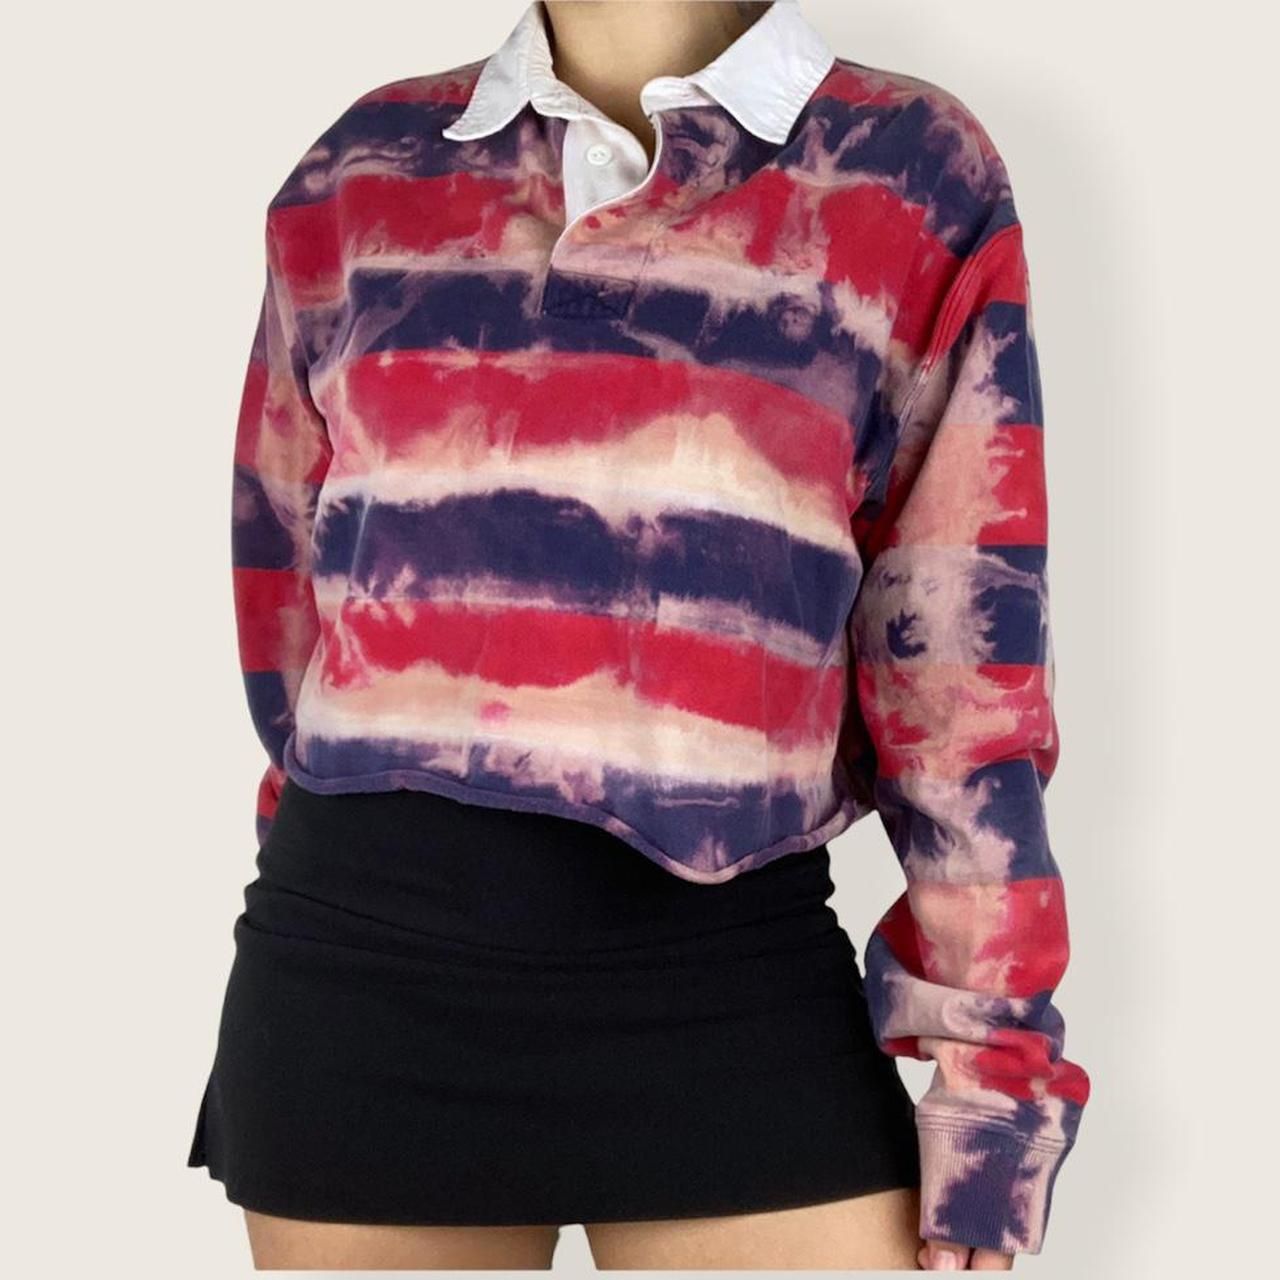 Product Image 1 - Striped collared sweater 🍉  Striped colorful